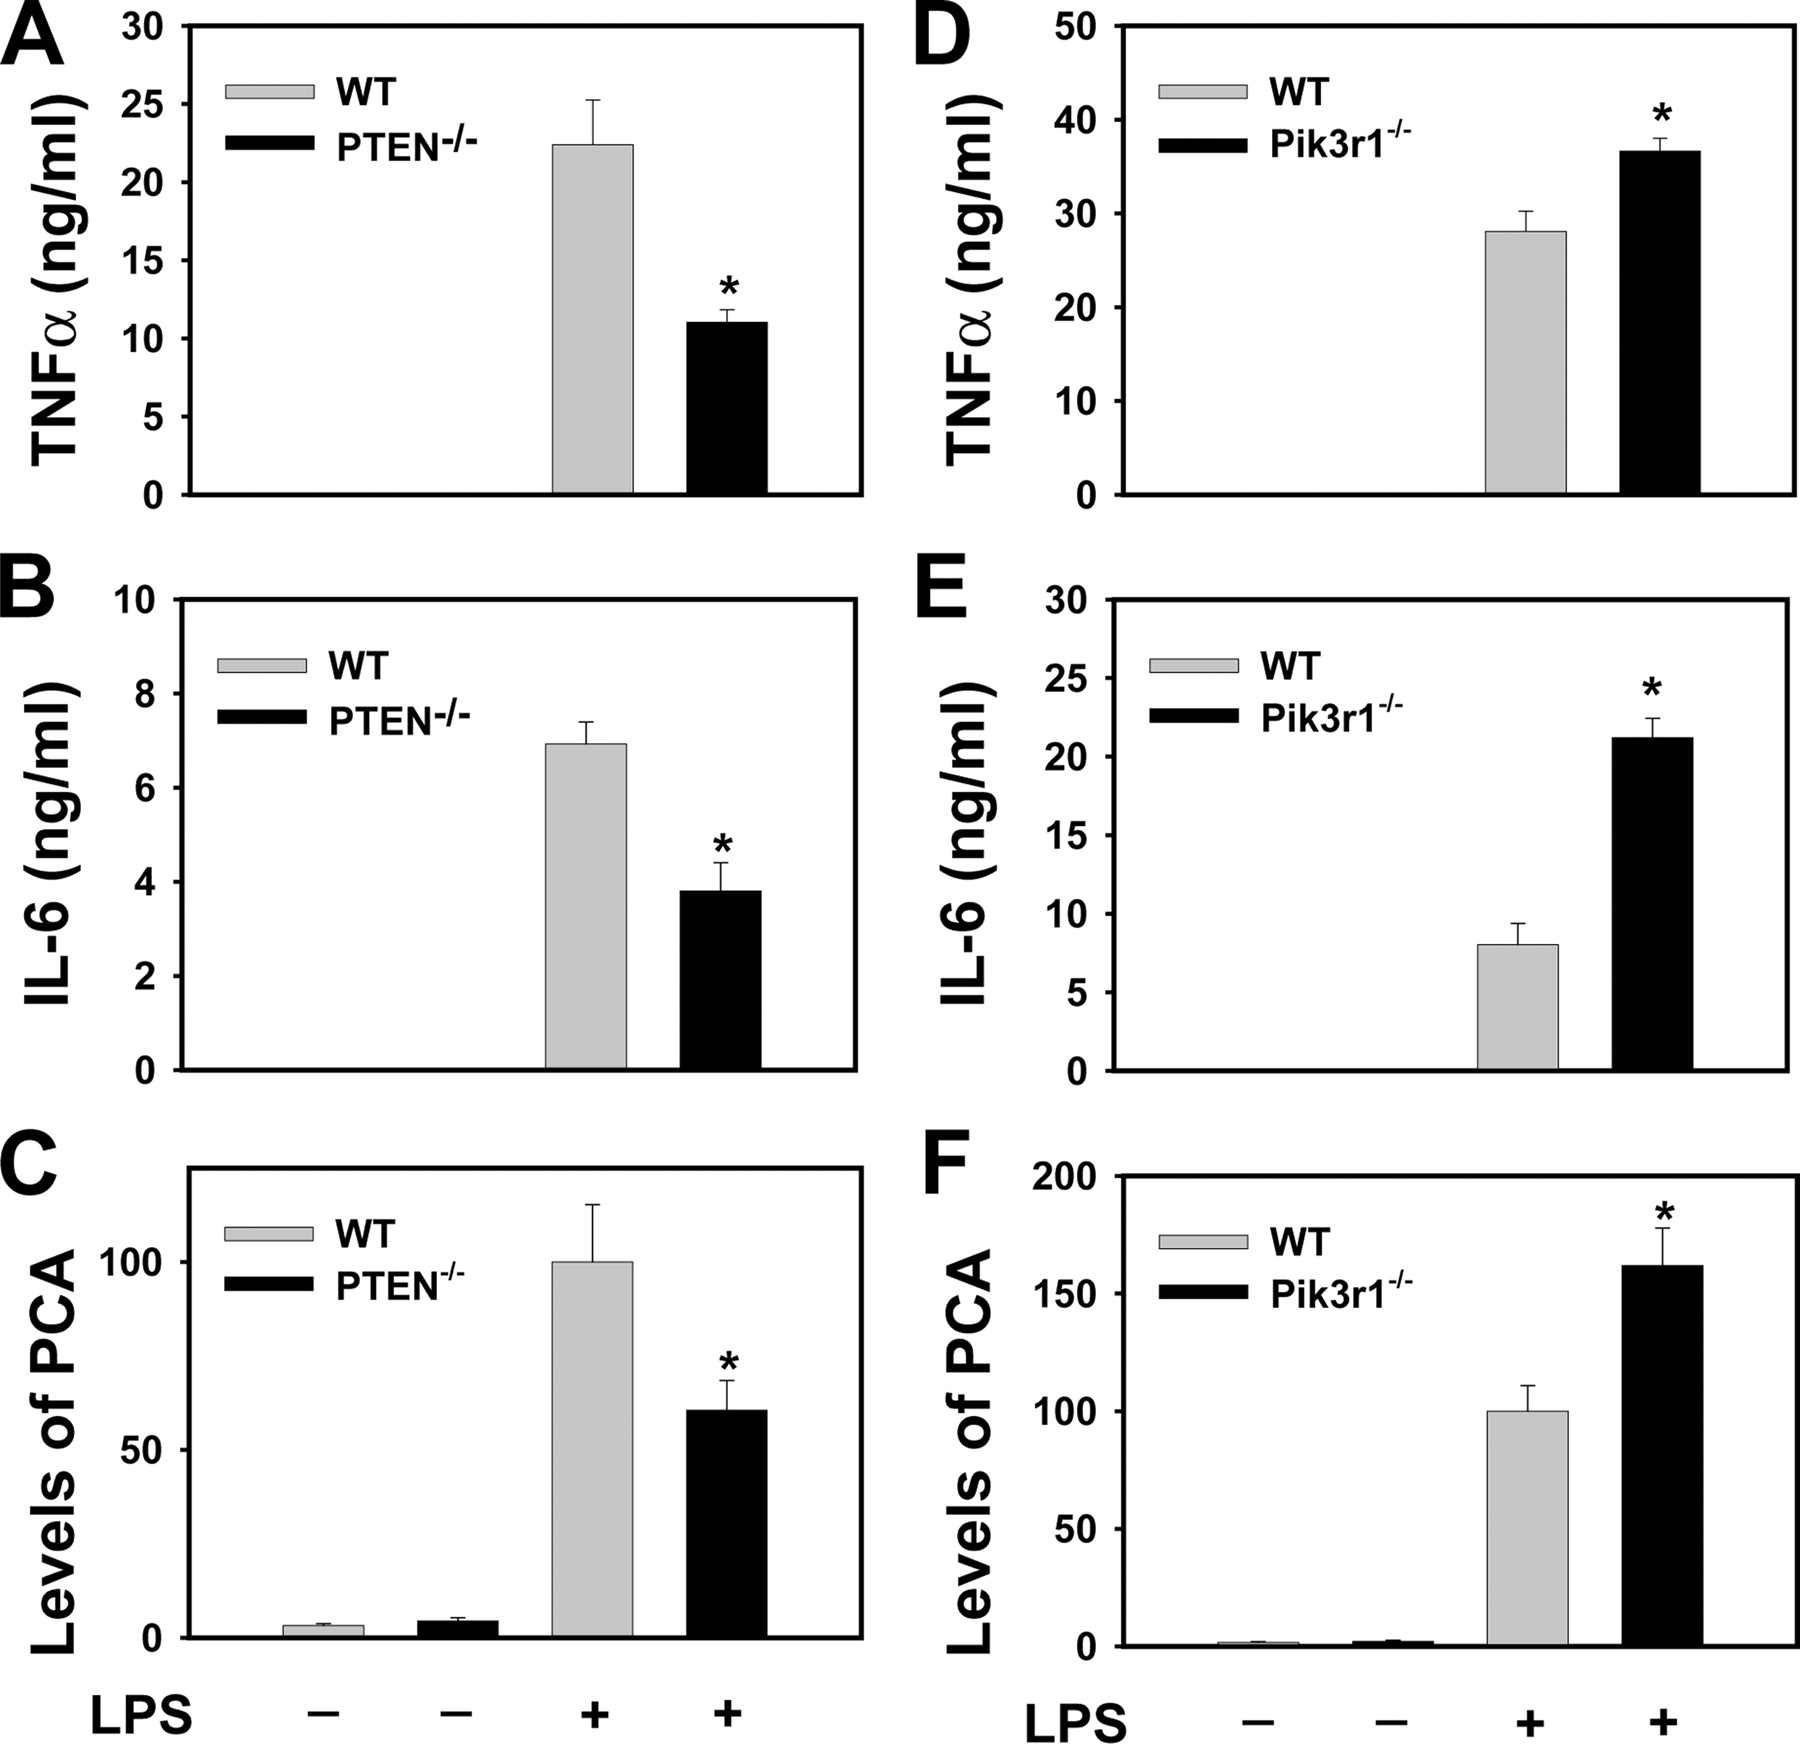 Geneticysis Of The Role Of The Pi3k Akt Pathway In Lipopolysaccharide Induced Cytokine And